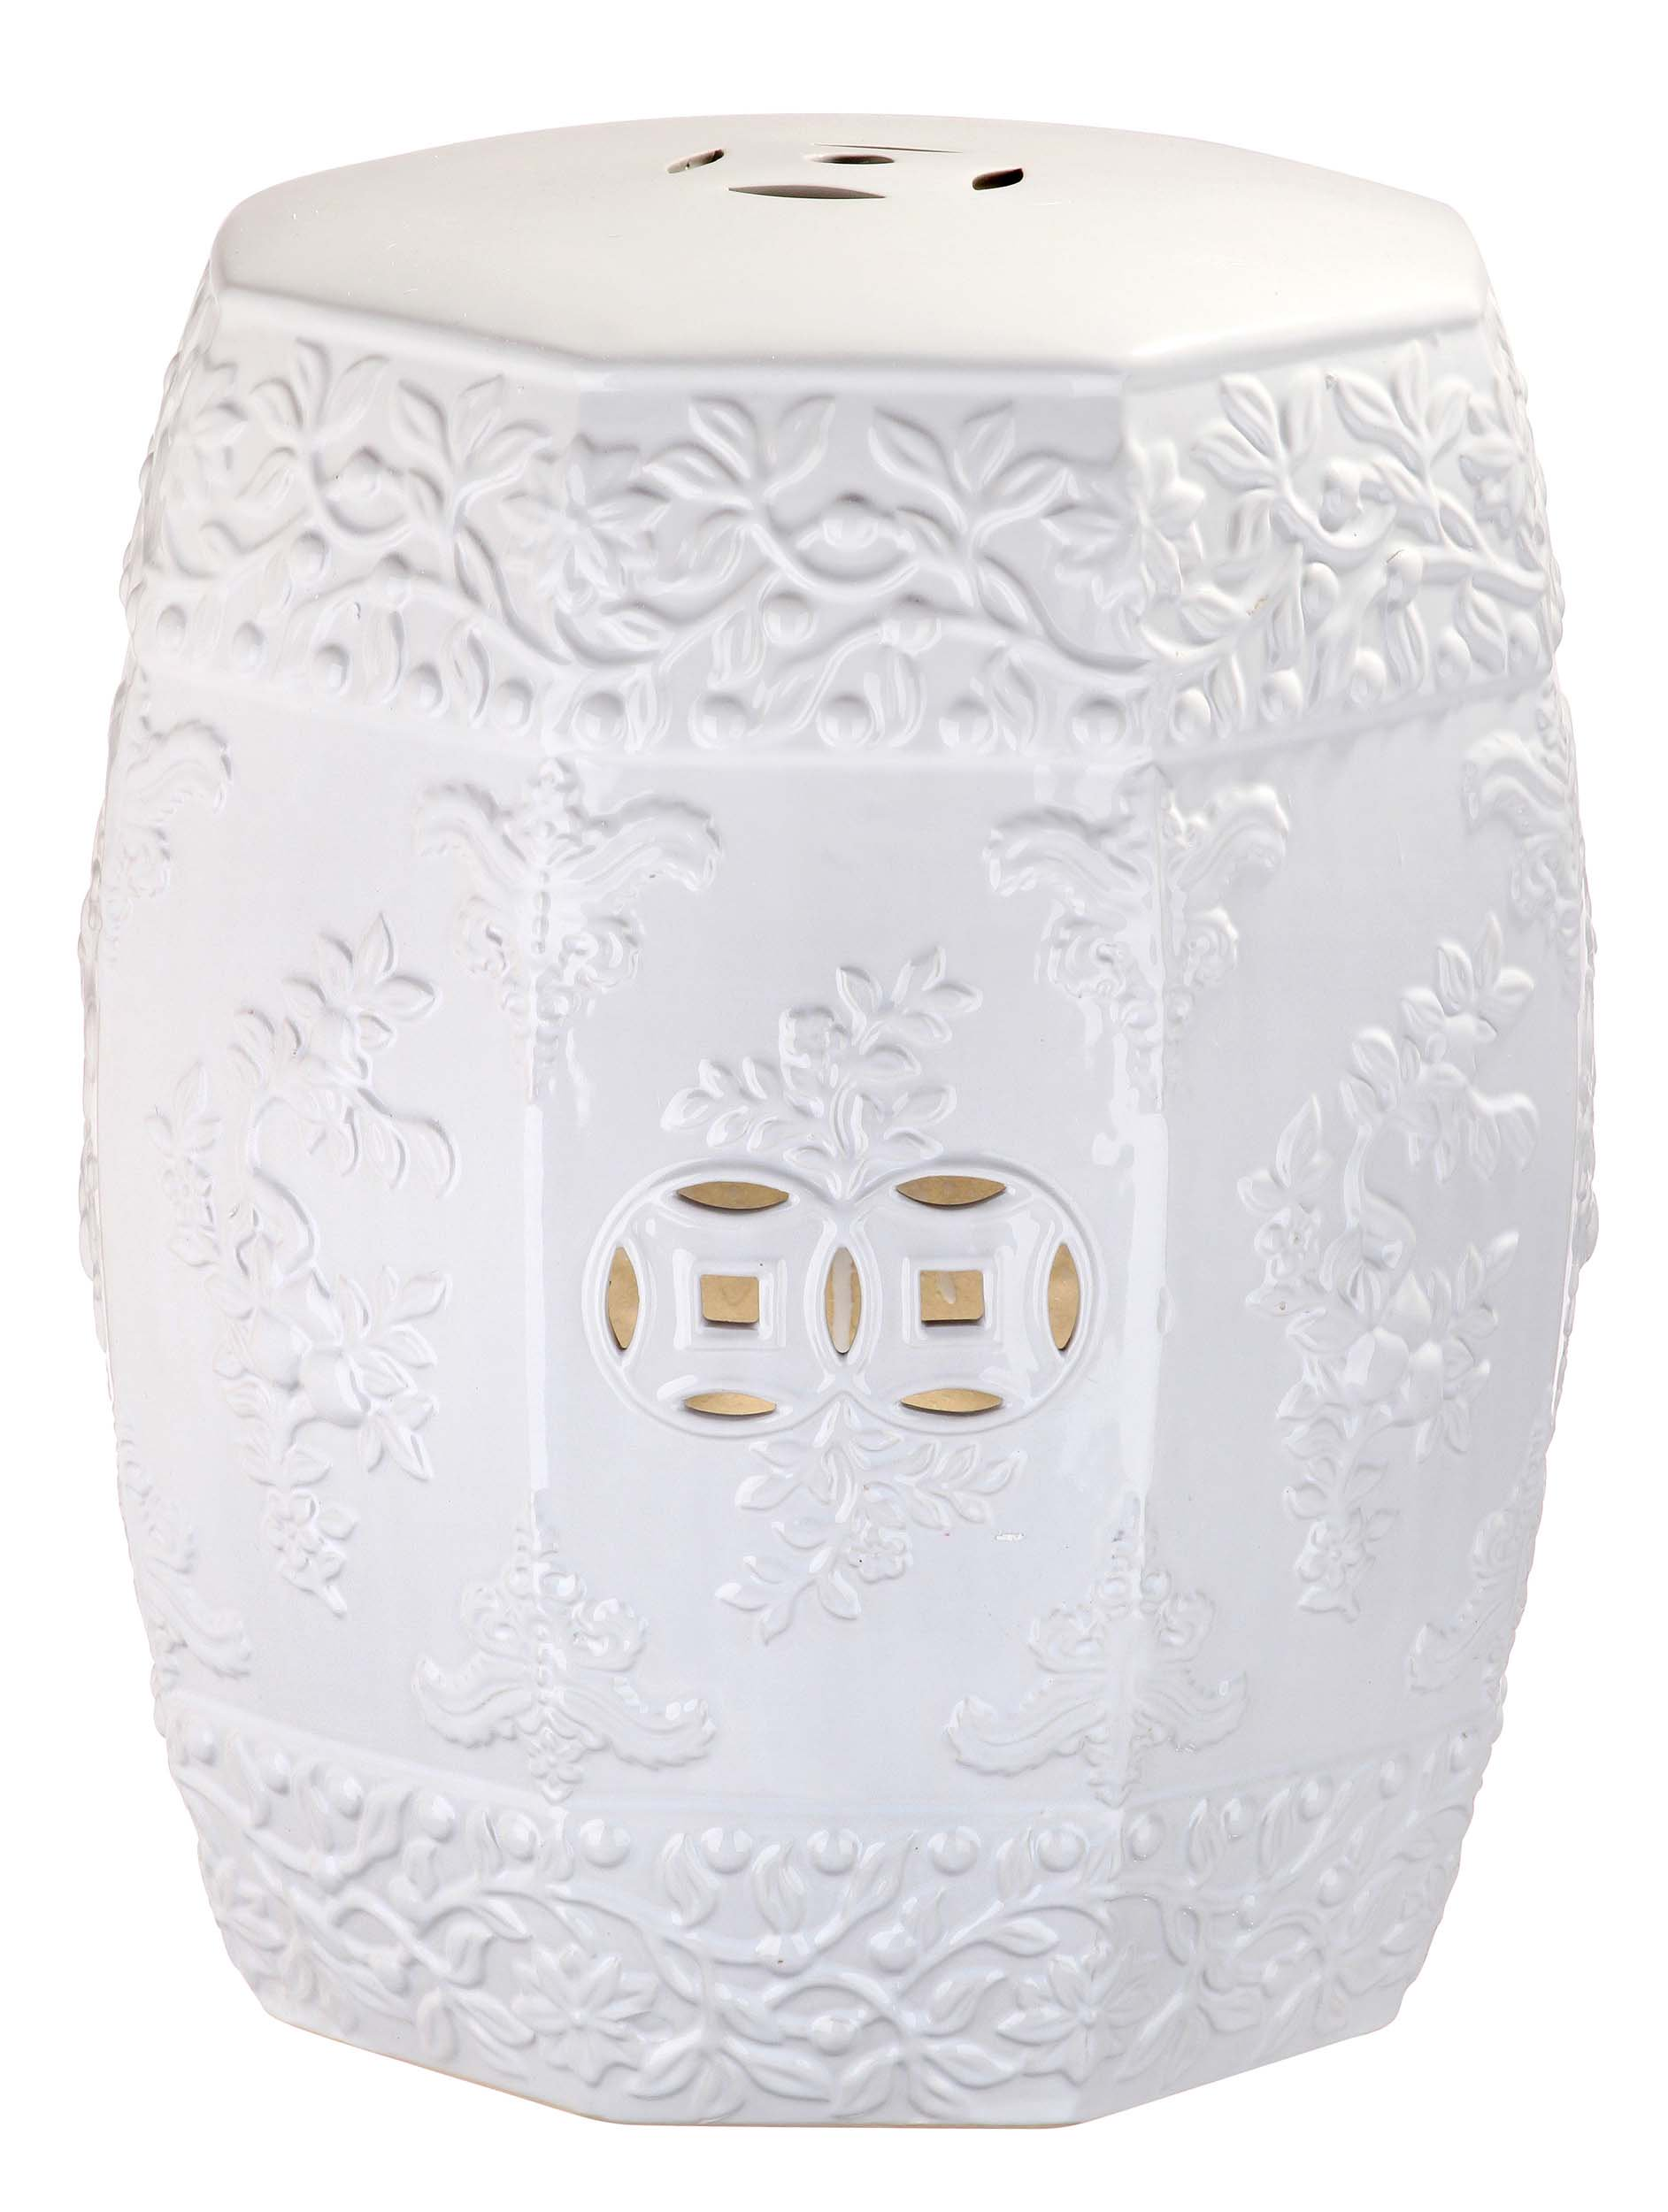 Safavieh Zen Ren Indoor/Outdoor Garden Stool, White